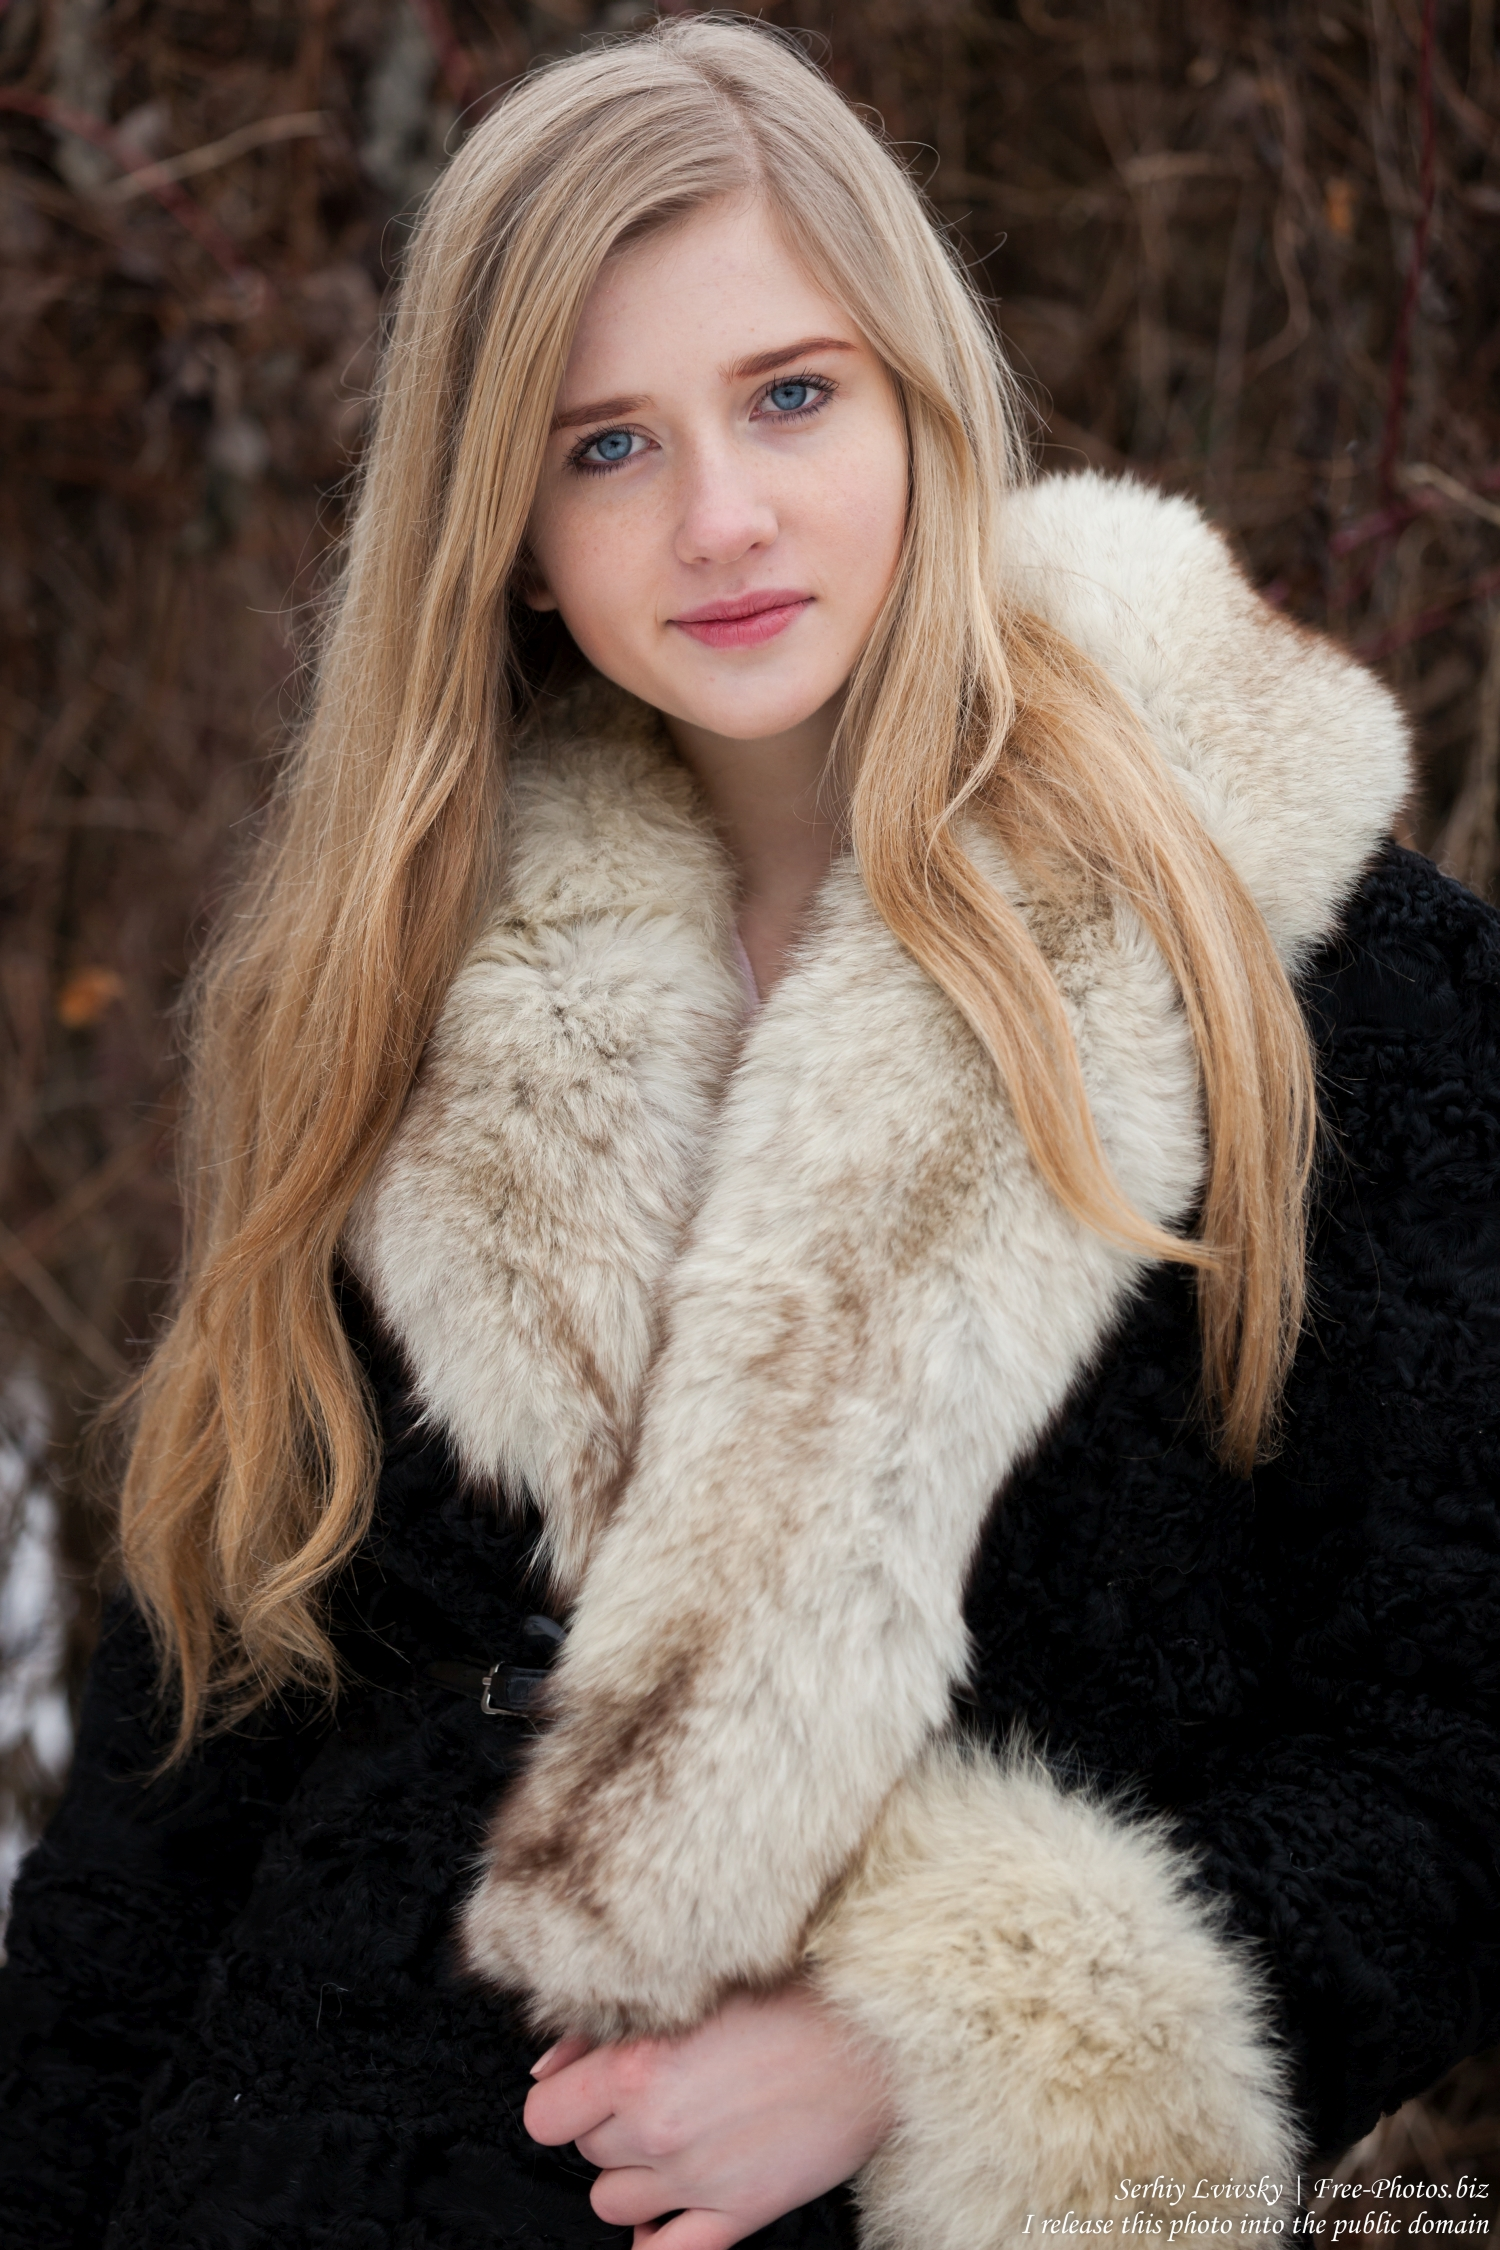 a_natural_blond_17-year-old_girl_photographed_by_serhiy_lvivsky_in_january_2016_13